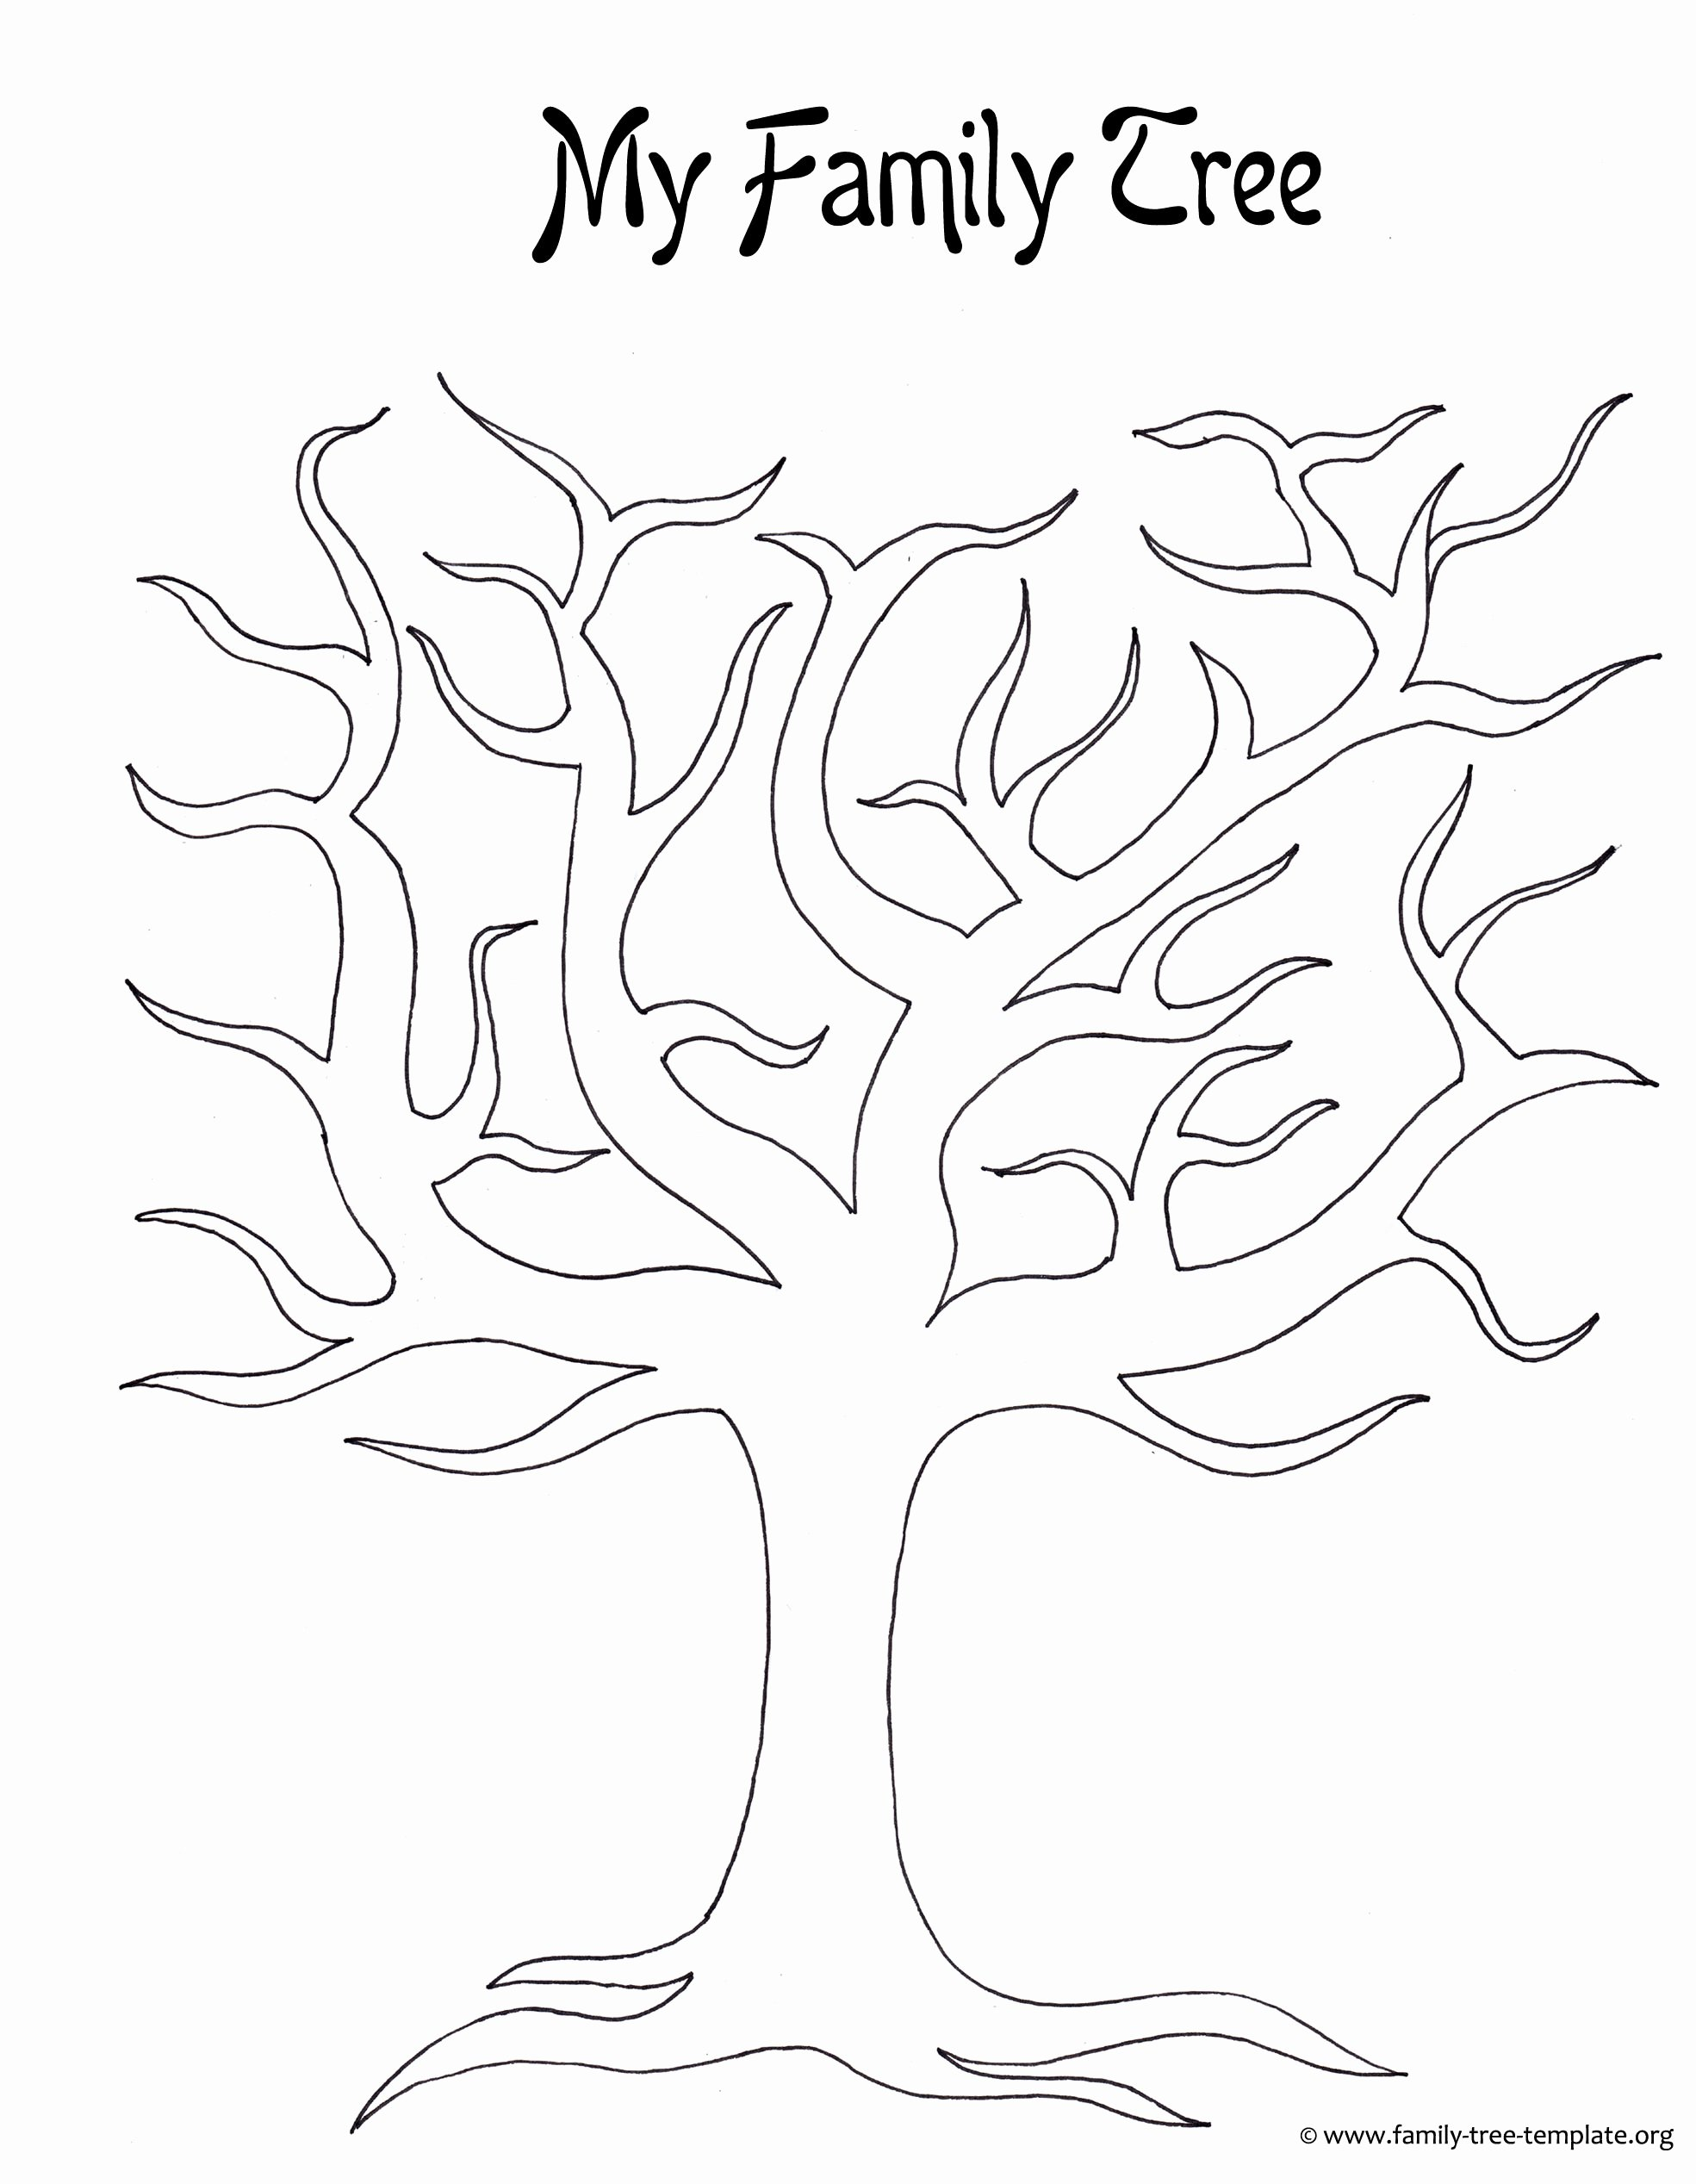 Print Family Tree Chart Lovely Make A Family Tree Easily with these Free Ancestry Charts